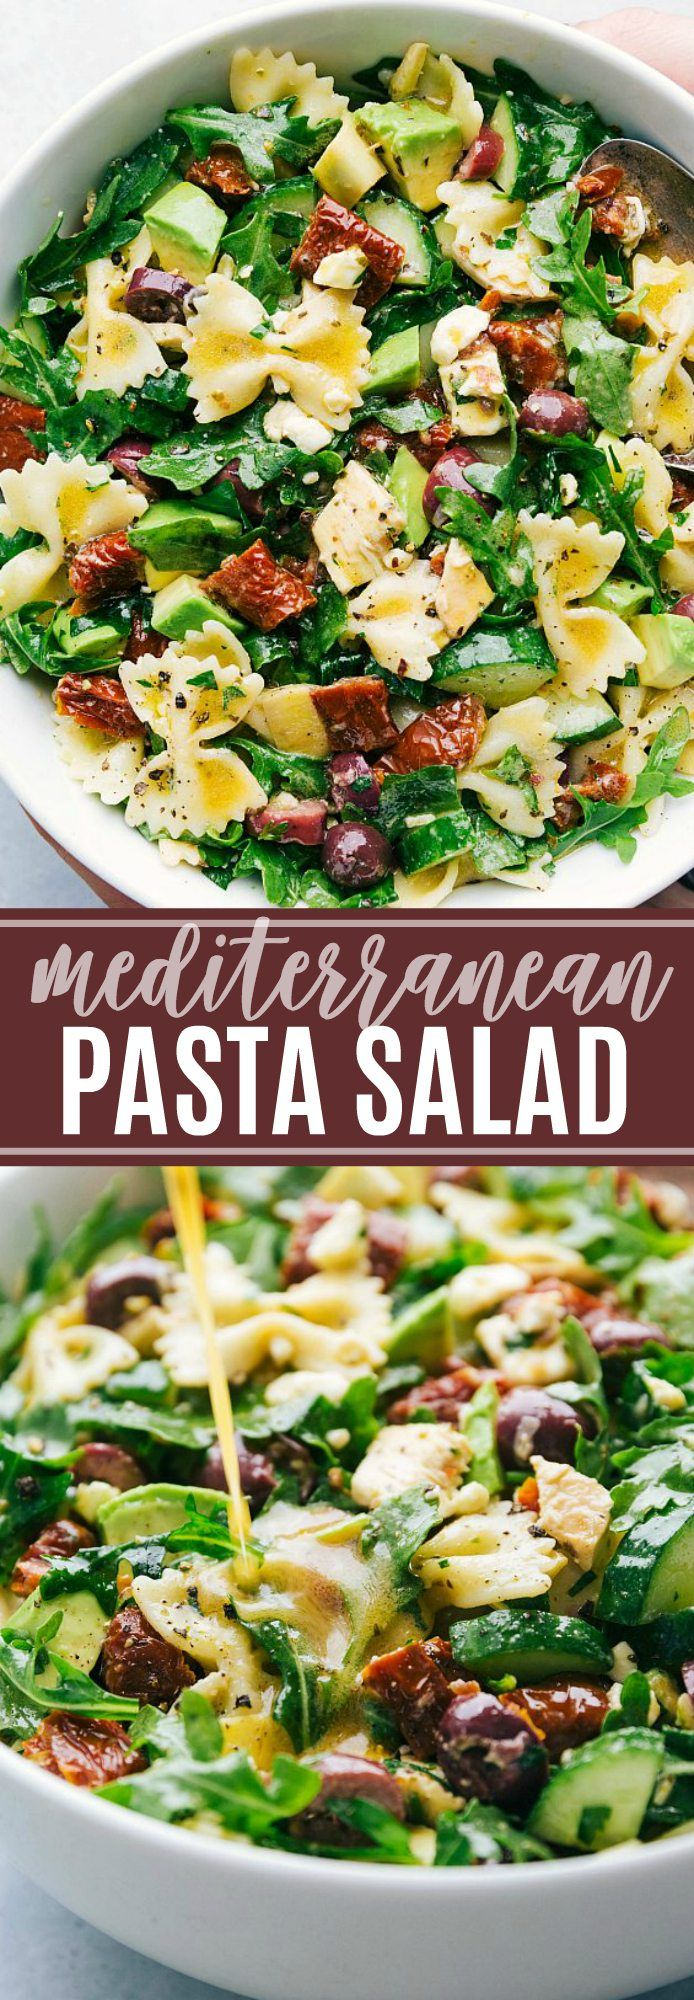 A delicious and healthy mediterranean pasta salad with arugula, veggie, and chicken salad with the best lemon vinaigrette! (Vegetarian option) via